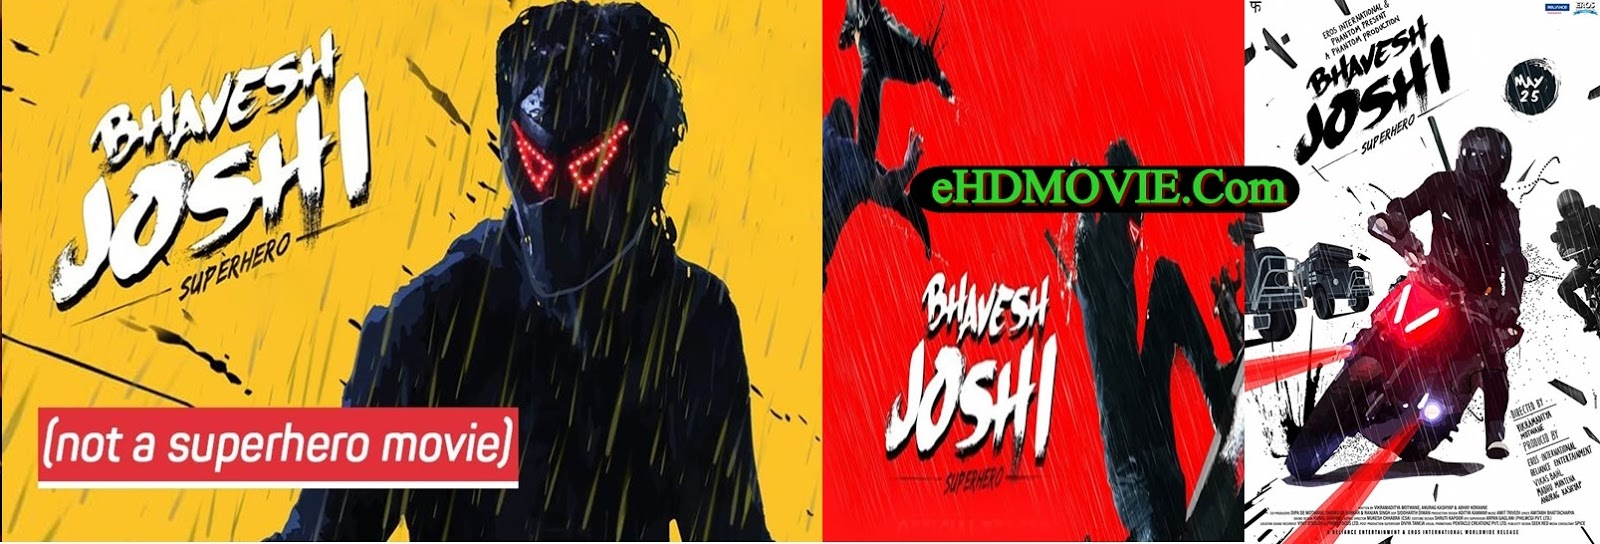 Bhavesh Joshi Superhero 2018 Full Movie Hindi 1080p - 720p - HEVC - 480p ORG WEB-DL 400MB - 700MB - 1.8GB - 2.1GB - 4.7GB ESubs Free Download